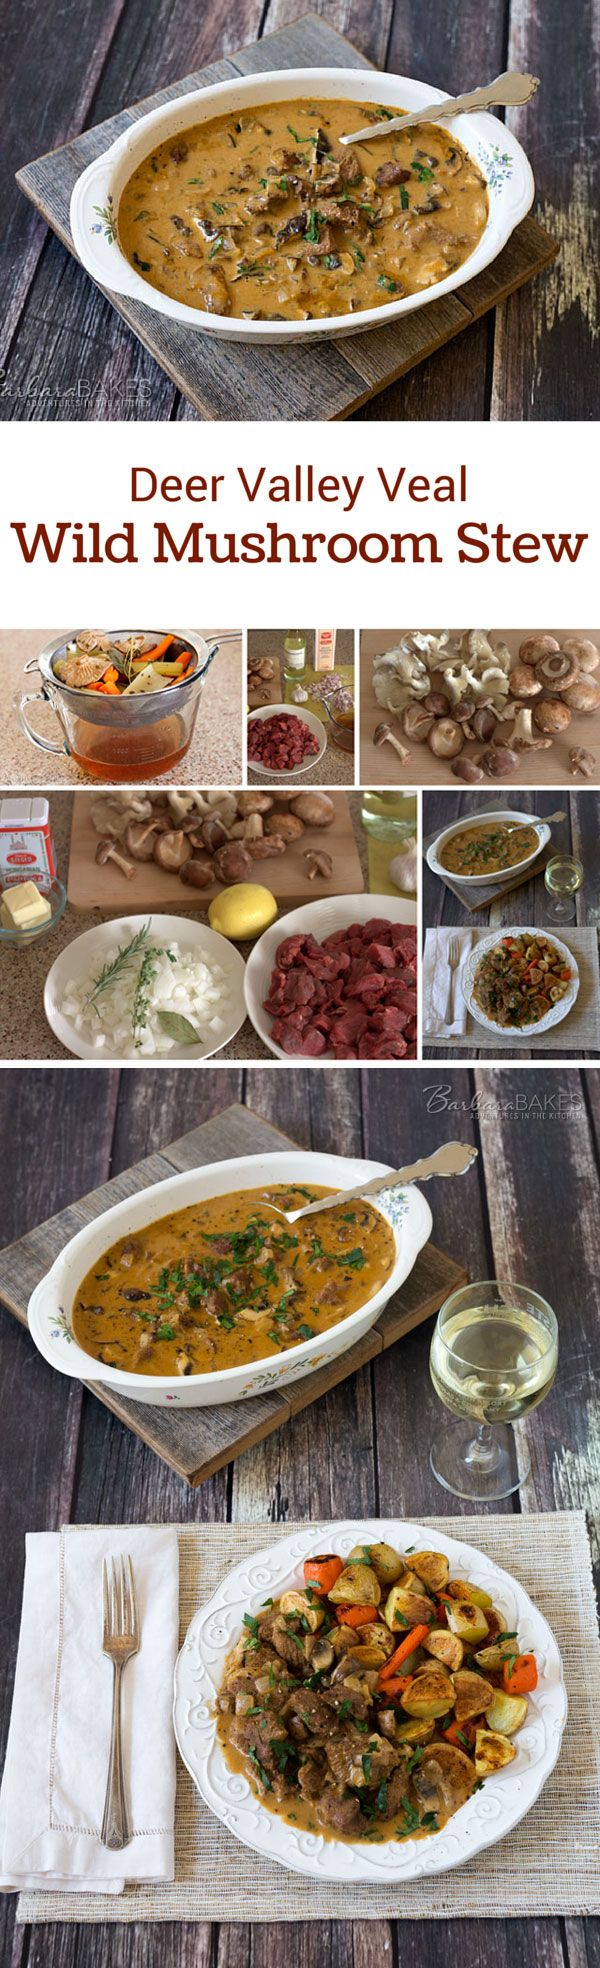 Deer Valley Veal Wild Mushroom Stew is loaded with wild mushrooms in a rich sauce made with white wine, heavy cream and mushroom stock.